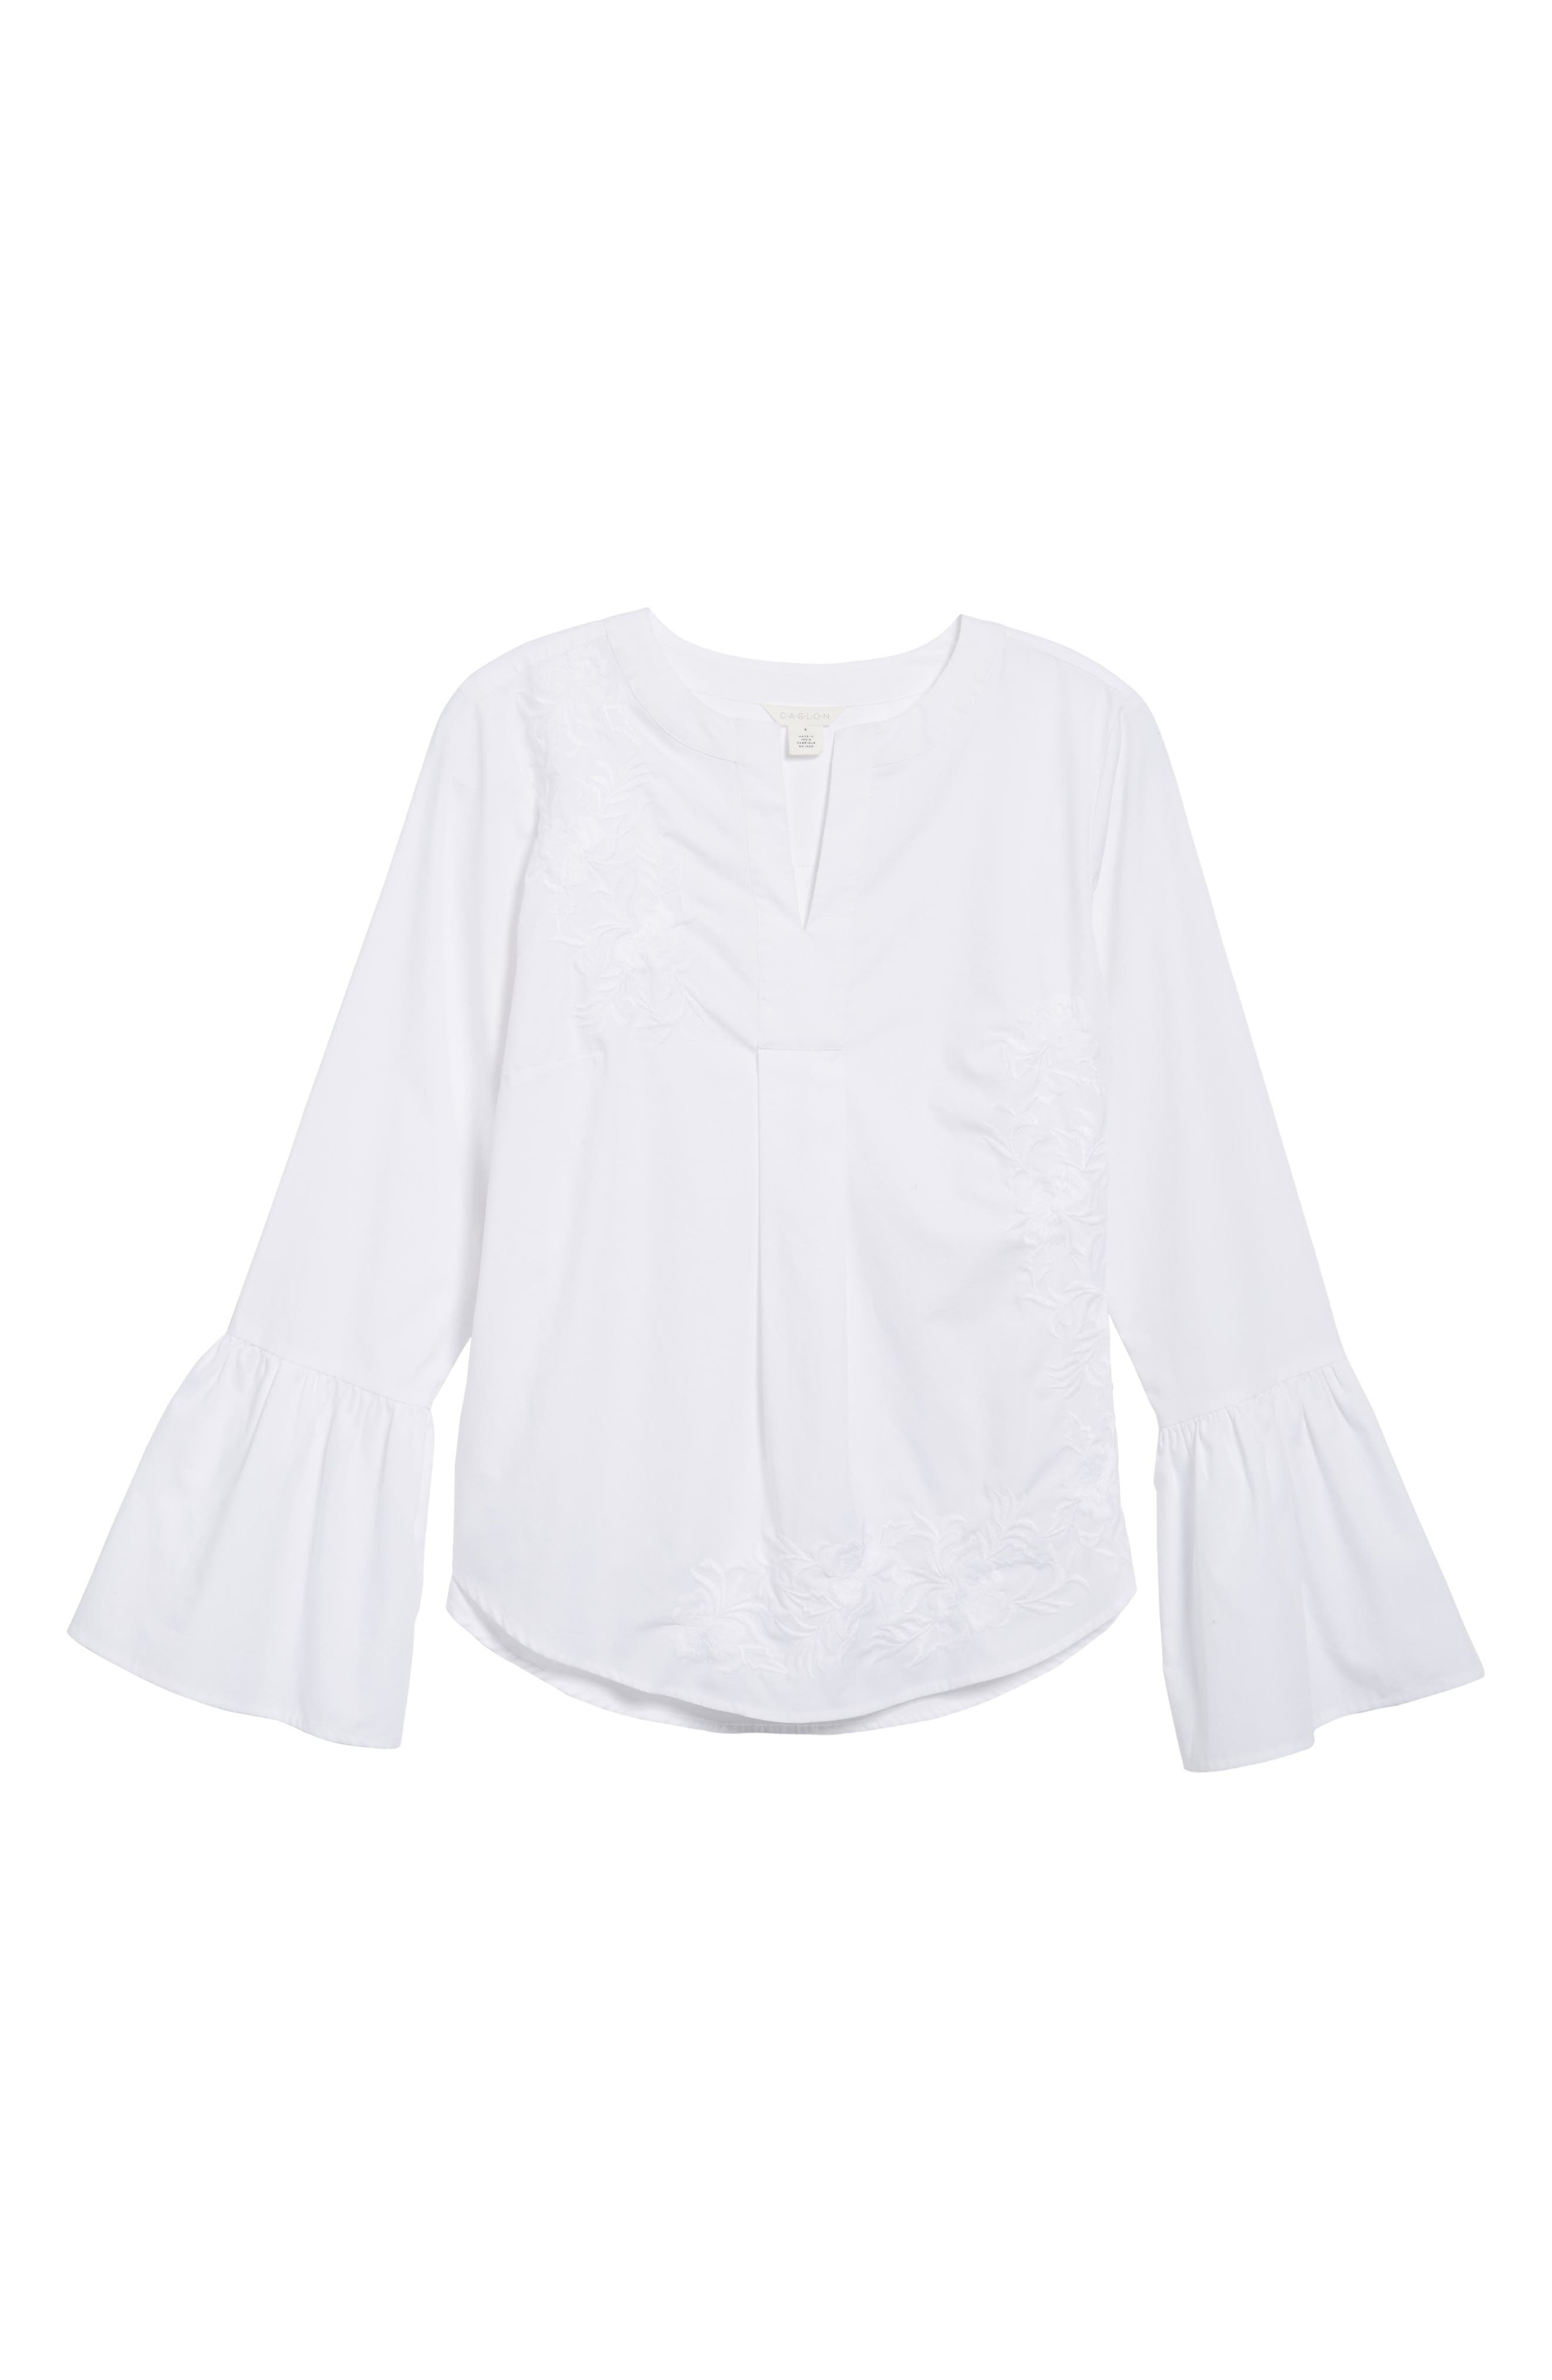 Embroidered Bell Sleeve Top,                             Alternate thumbnail 6, color,                             White Embroidered Pattern